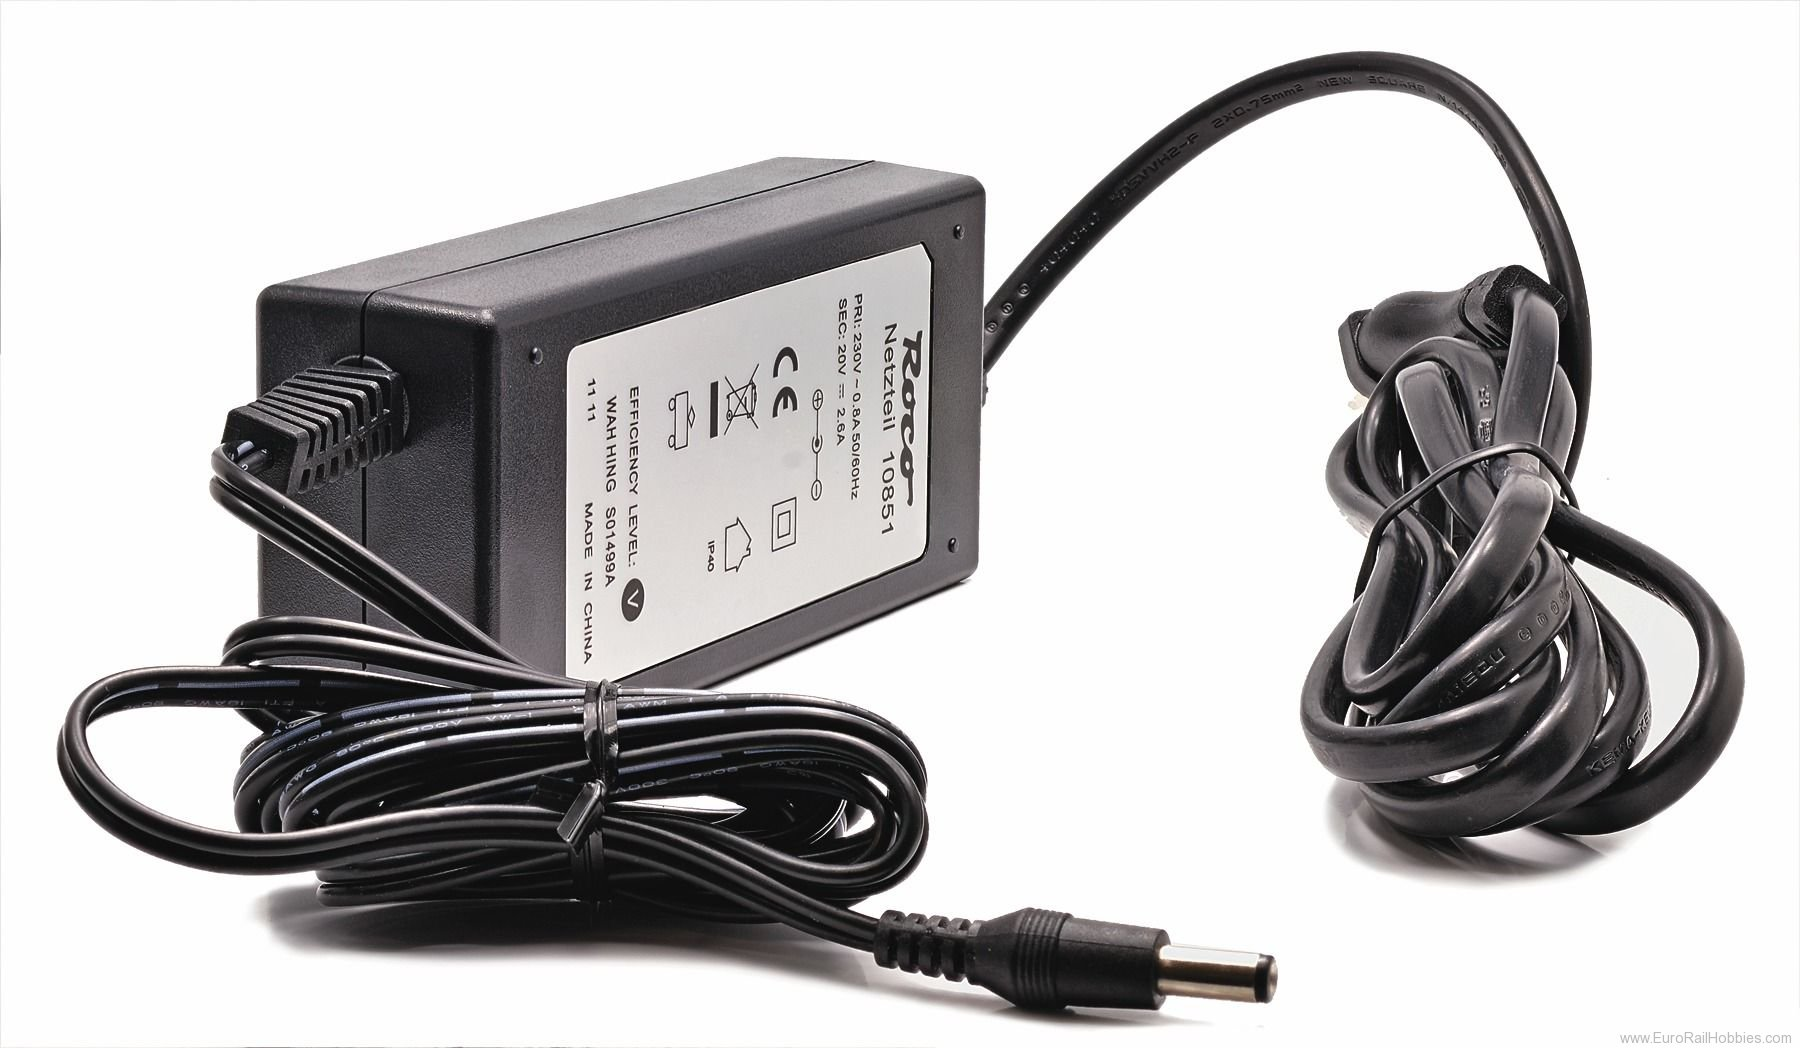 Roco 10851 Digital Switch Power Supply (230V - 54VA)